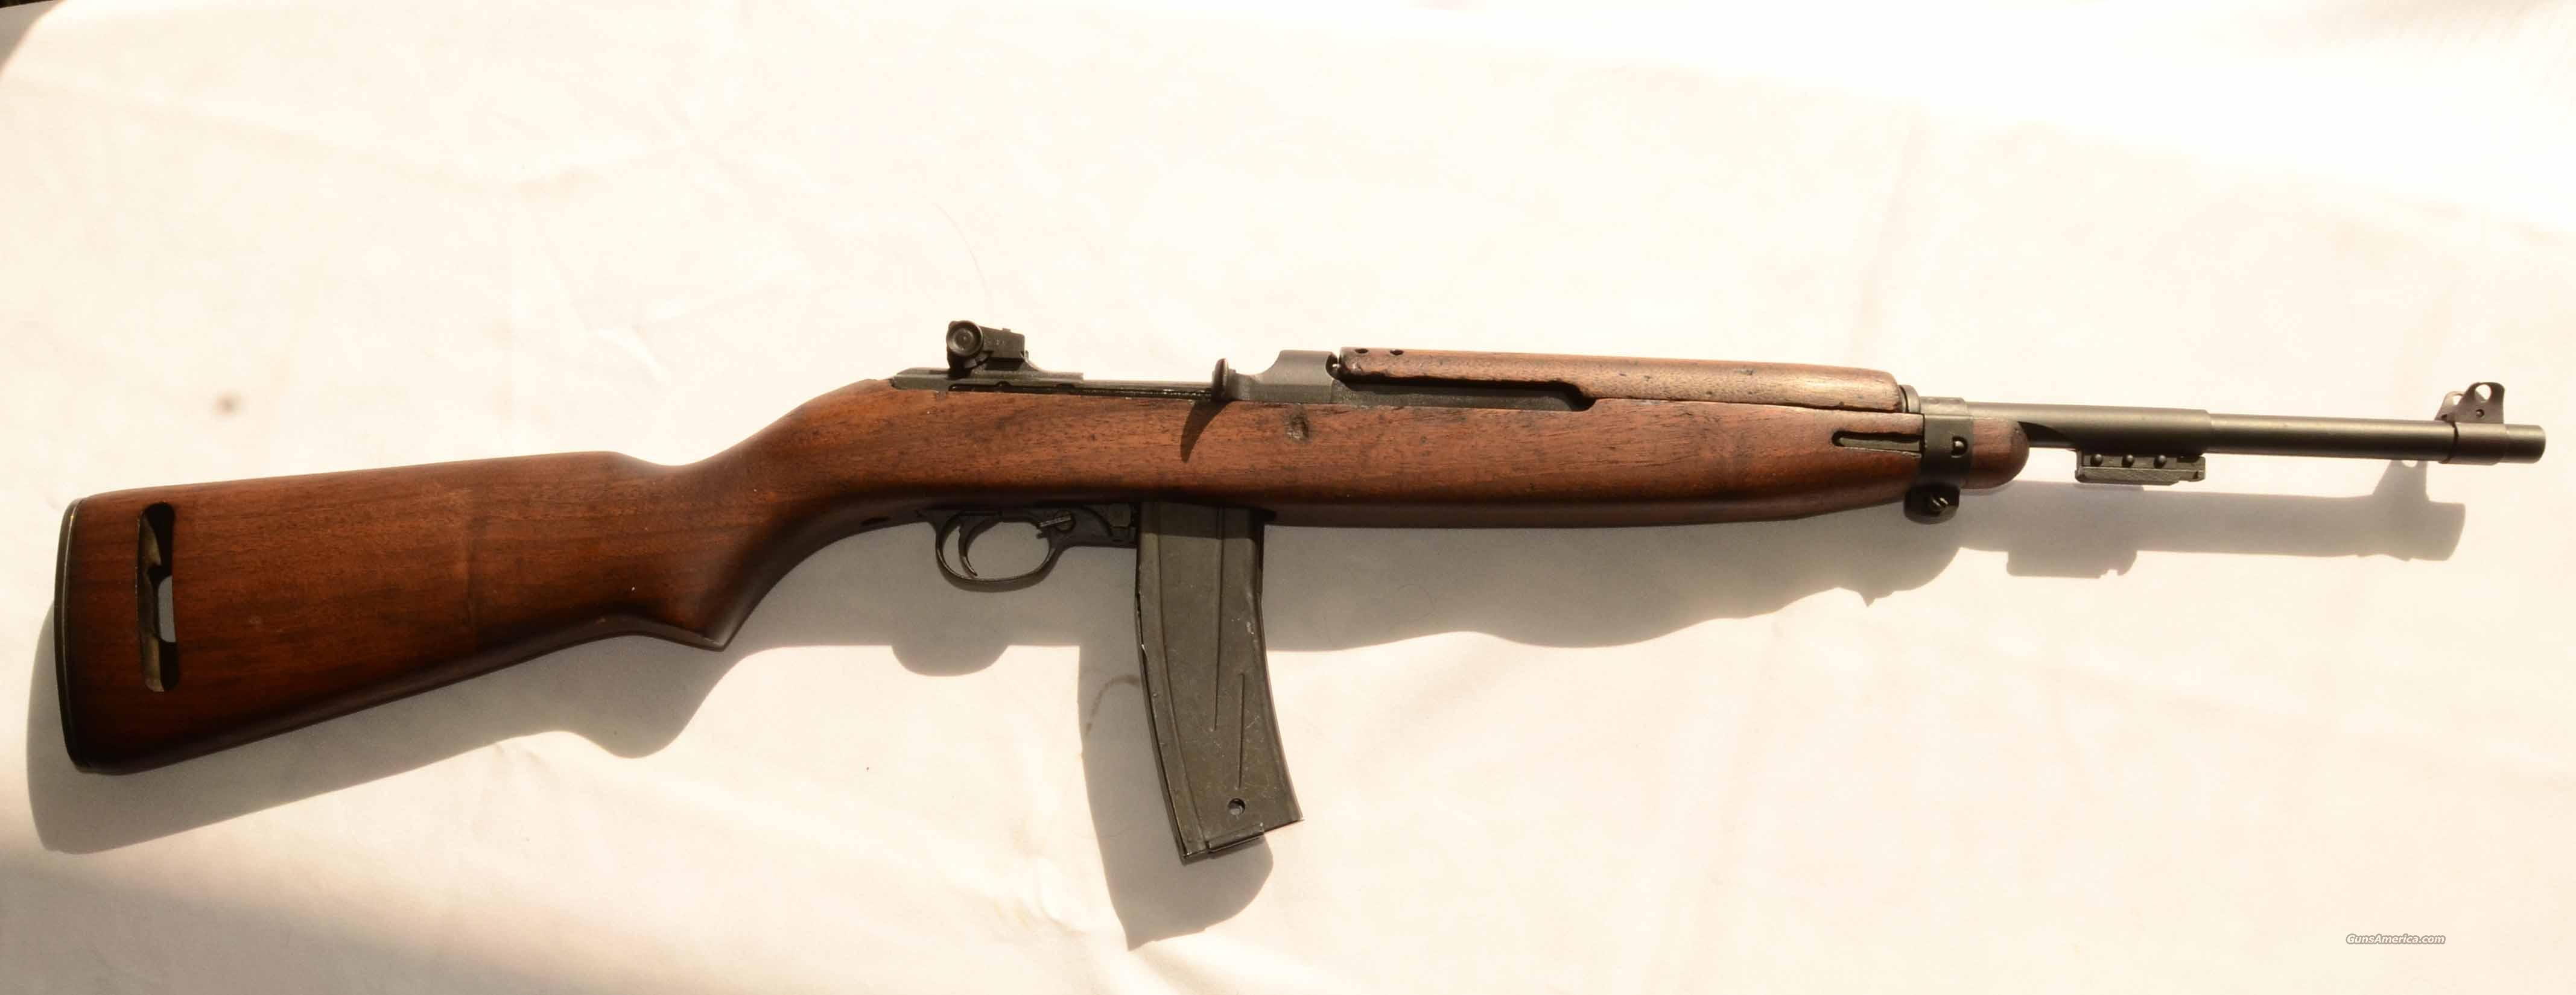 M2 CARBINE, WWII VINTAGE, UNFIRED, FULL-AUTO for sale